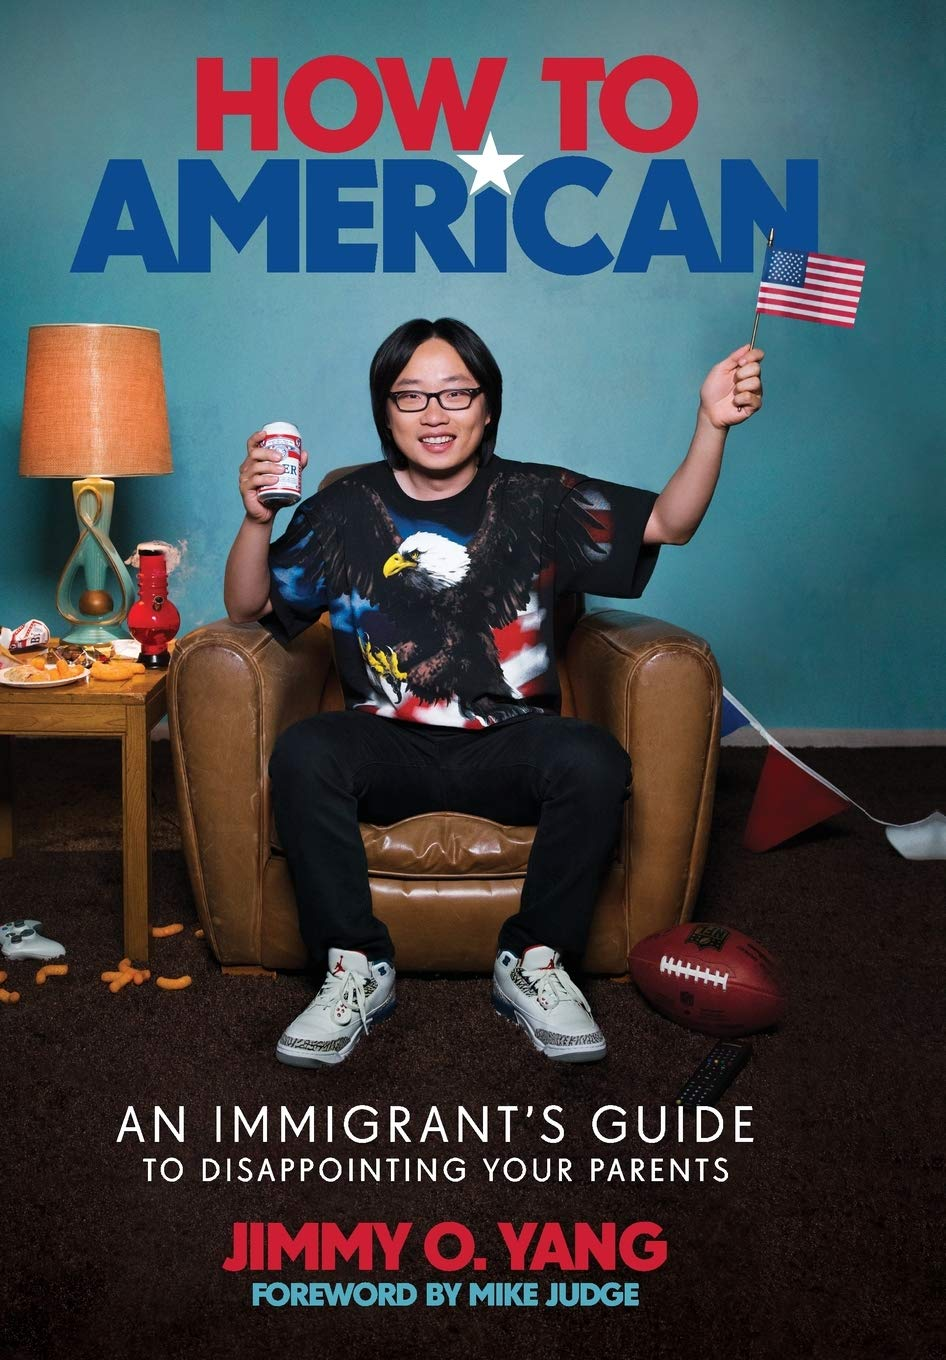 Amazon.com: How to American: An Immigrant's Guide to Disappointing ...